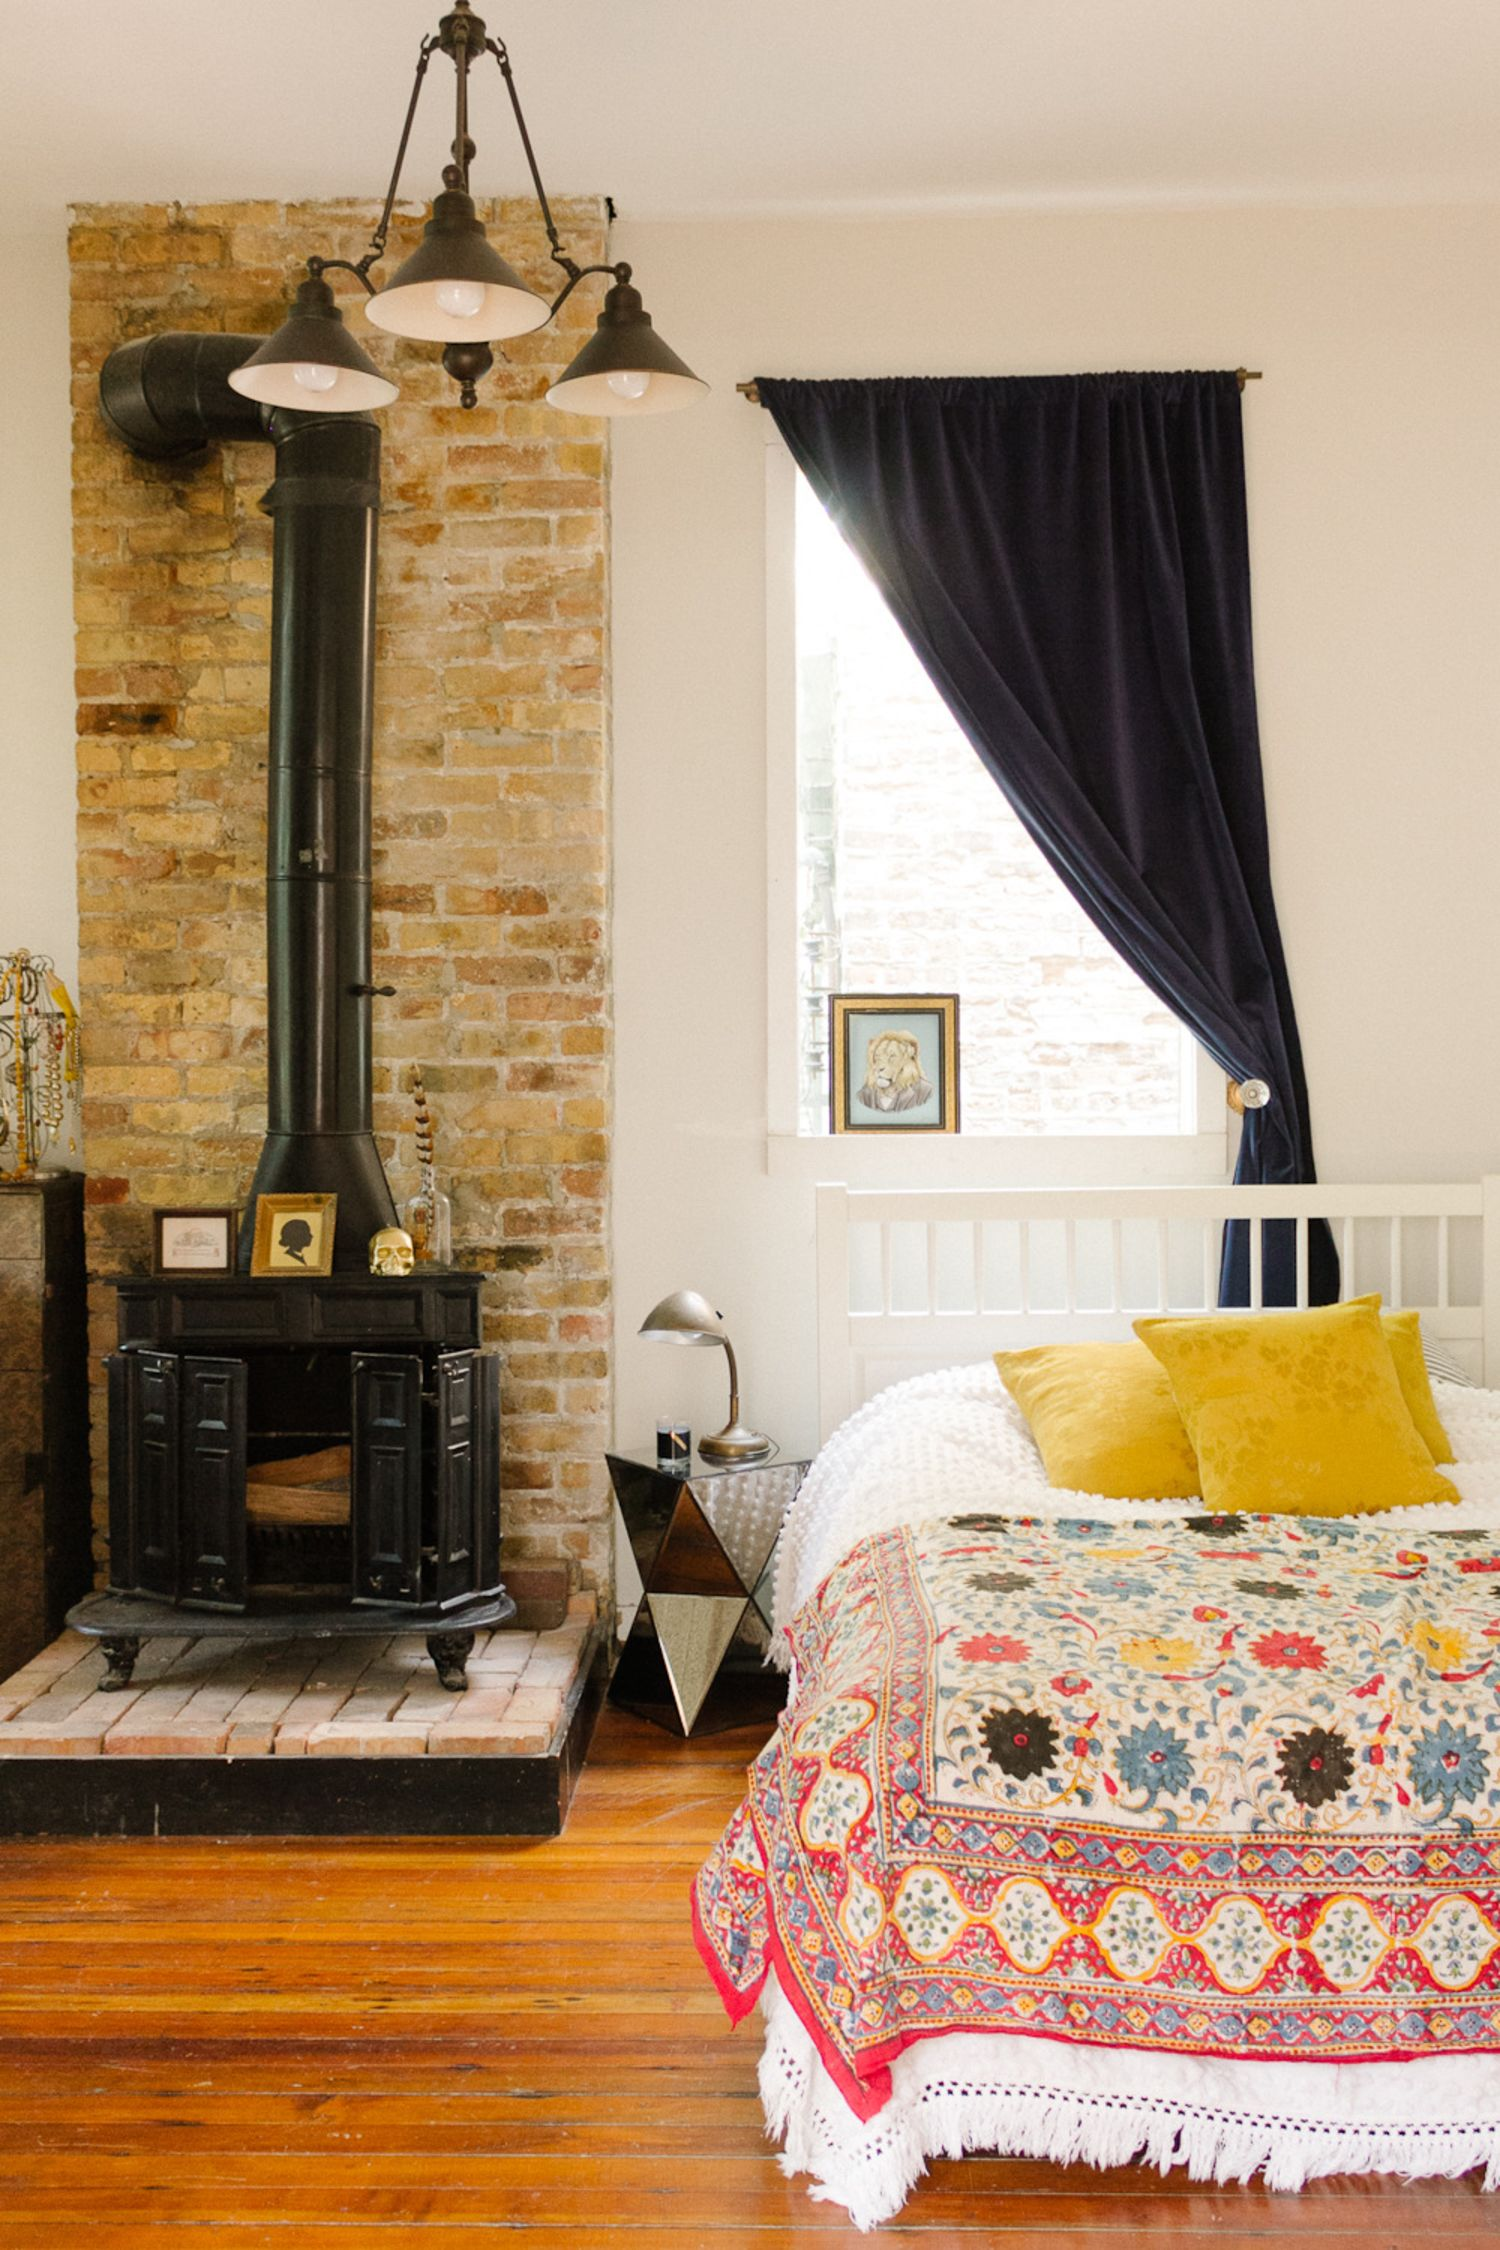 Sleep Better With Black Out Curtains Sources For Buying